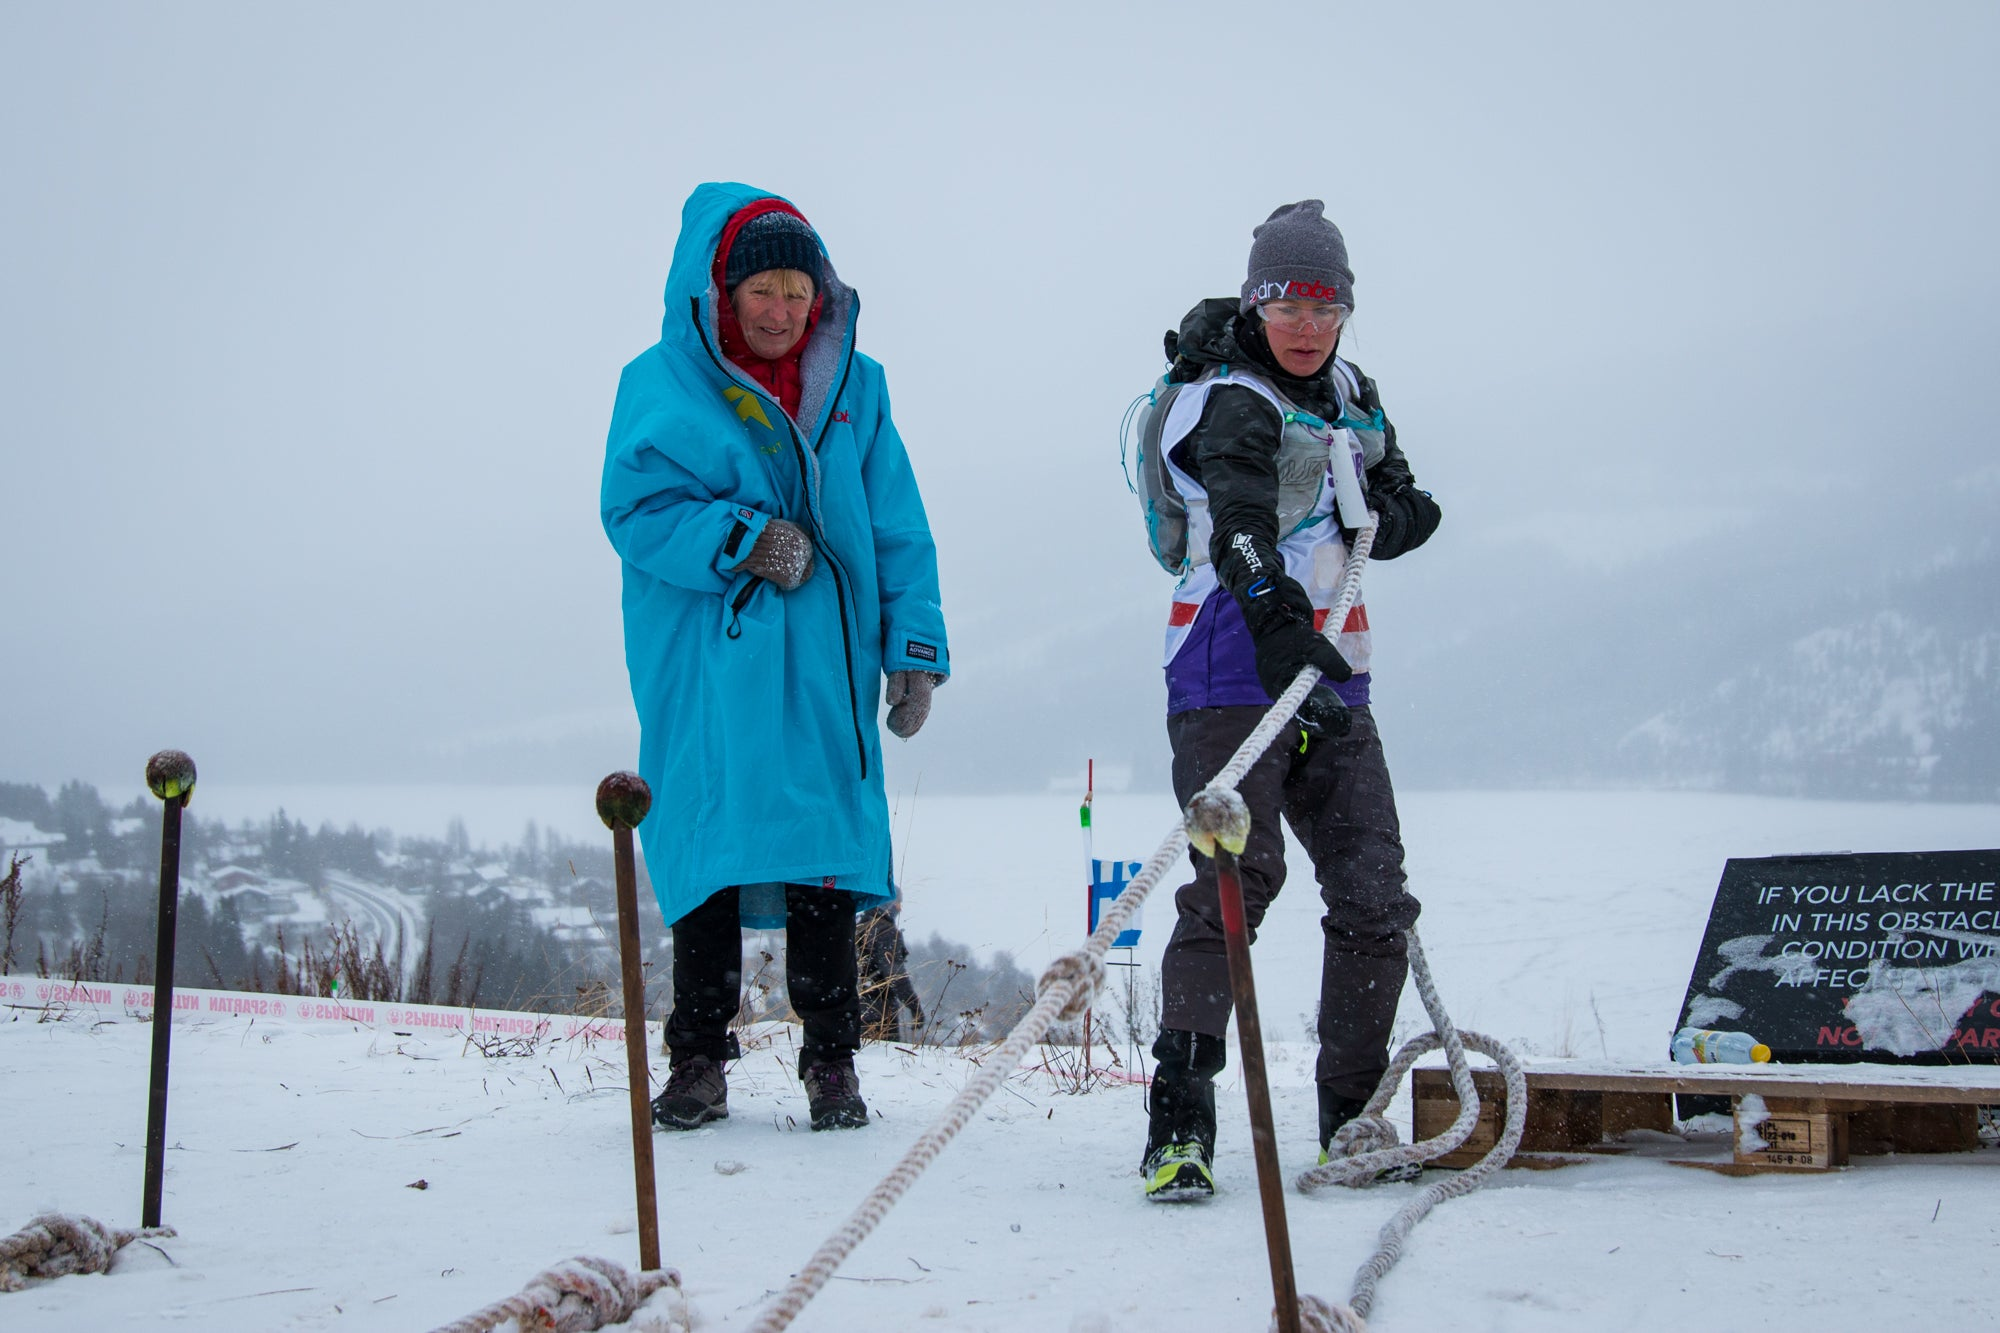 Rea Kolbl and her mom at Spartan Ultra World Championships 2019